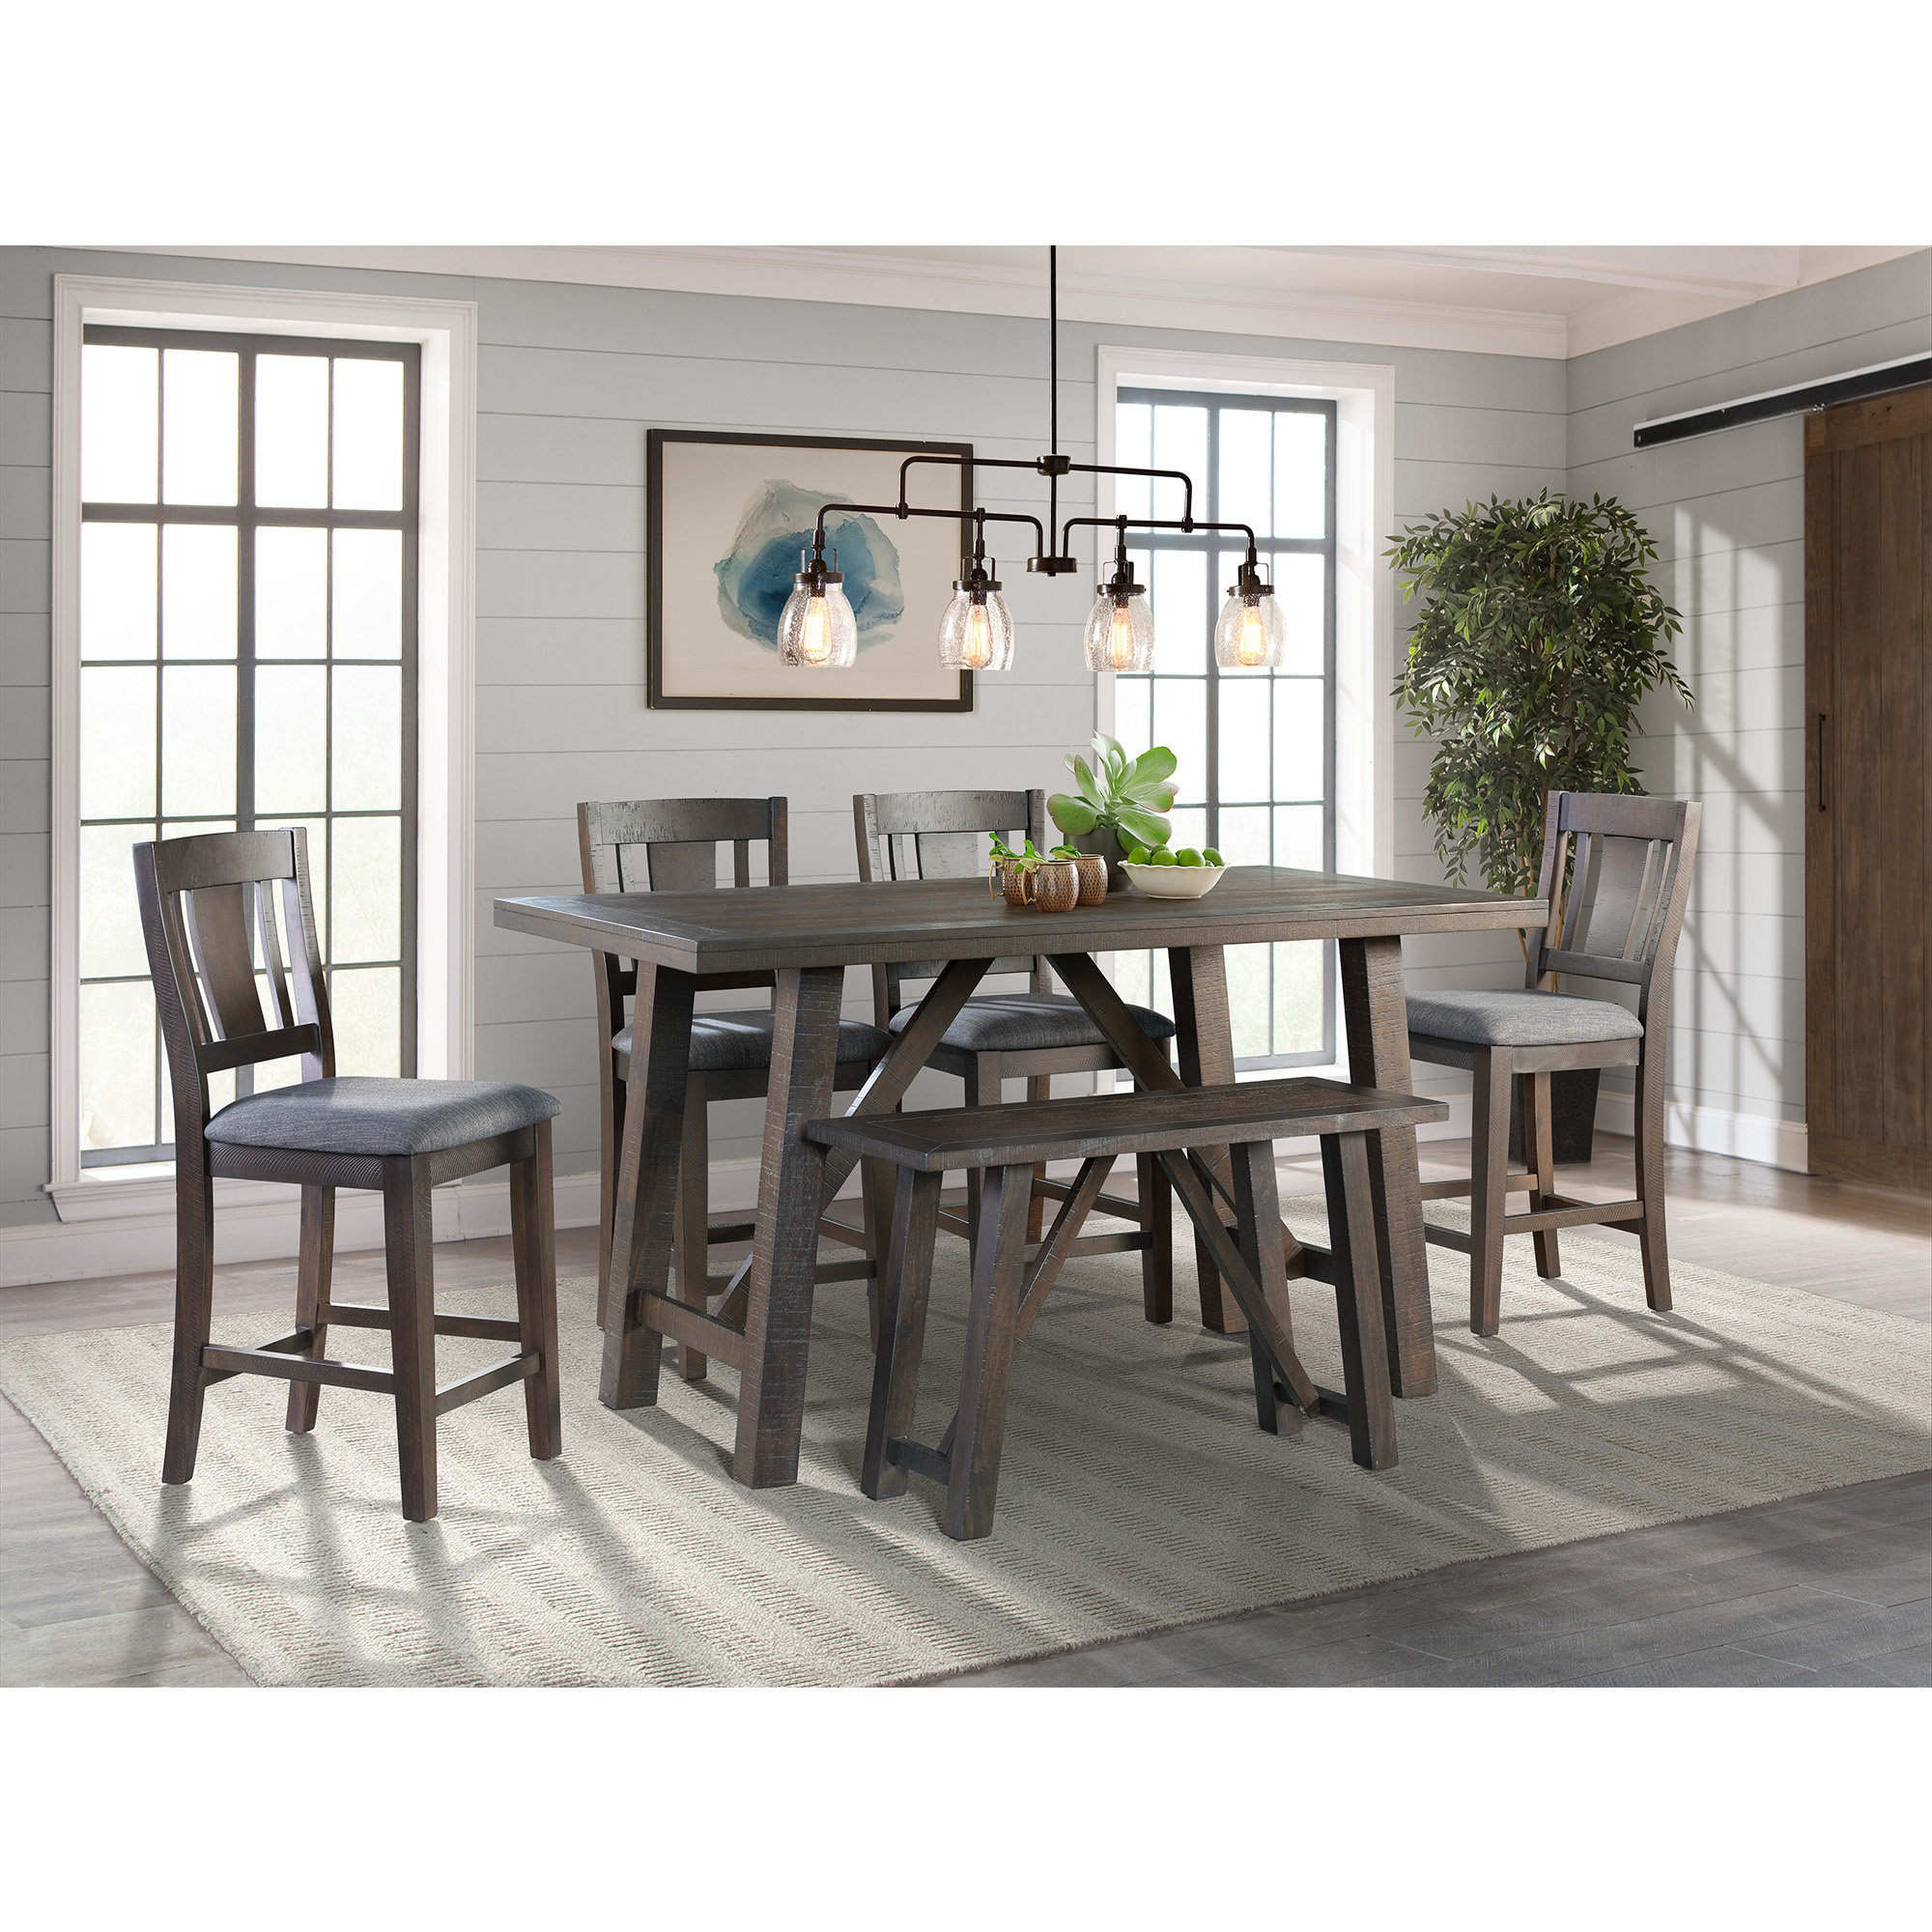 Sorrentino 6 Piece Pub Table Set Regarding Recent Hanska Wooden 5 Piece Counter Height Dining Table Sets (Set Of 5) (Image 18 of 20)